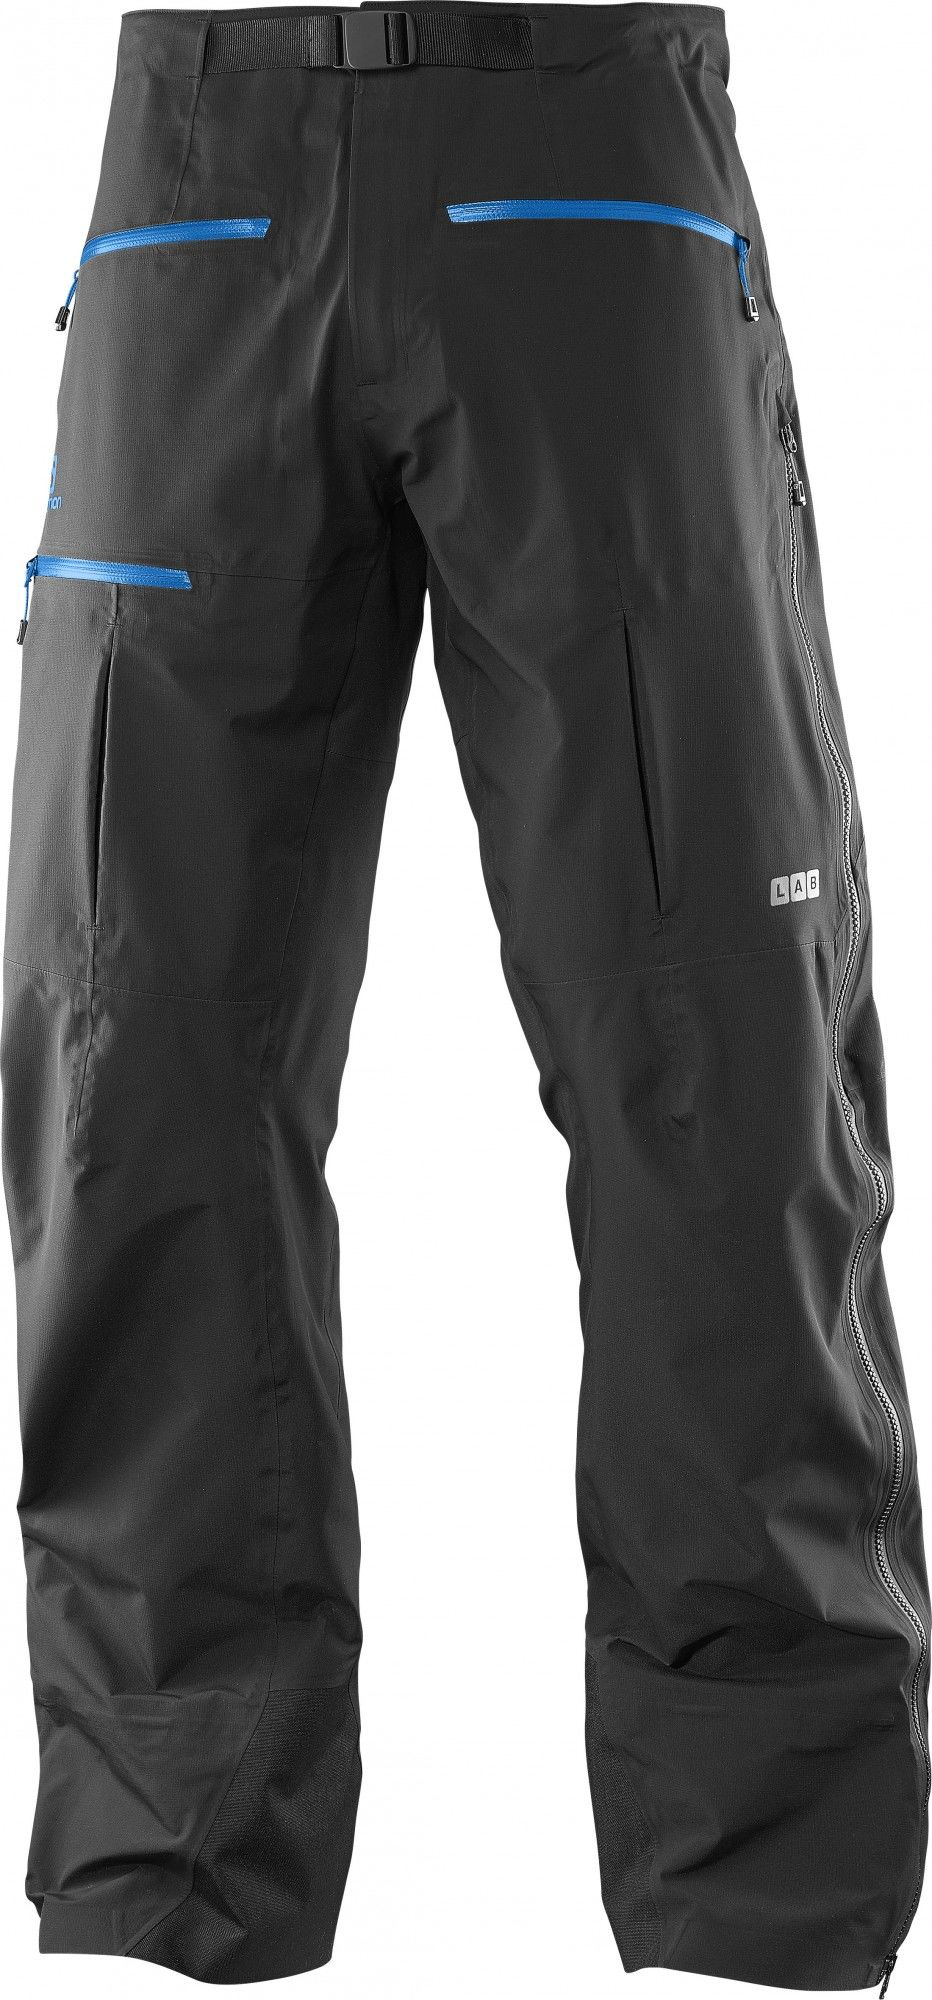 Salomon S-LaB X Alp Pro Pant Schwarz, Male Gore-Tex® Hose, XL